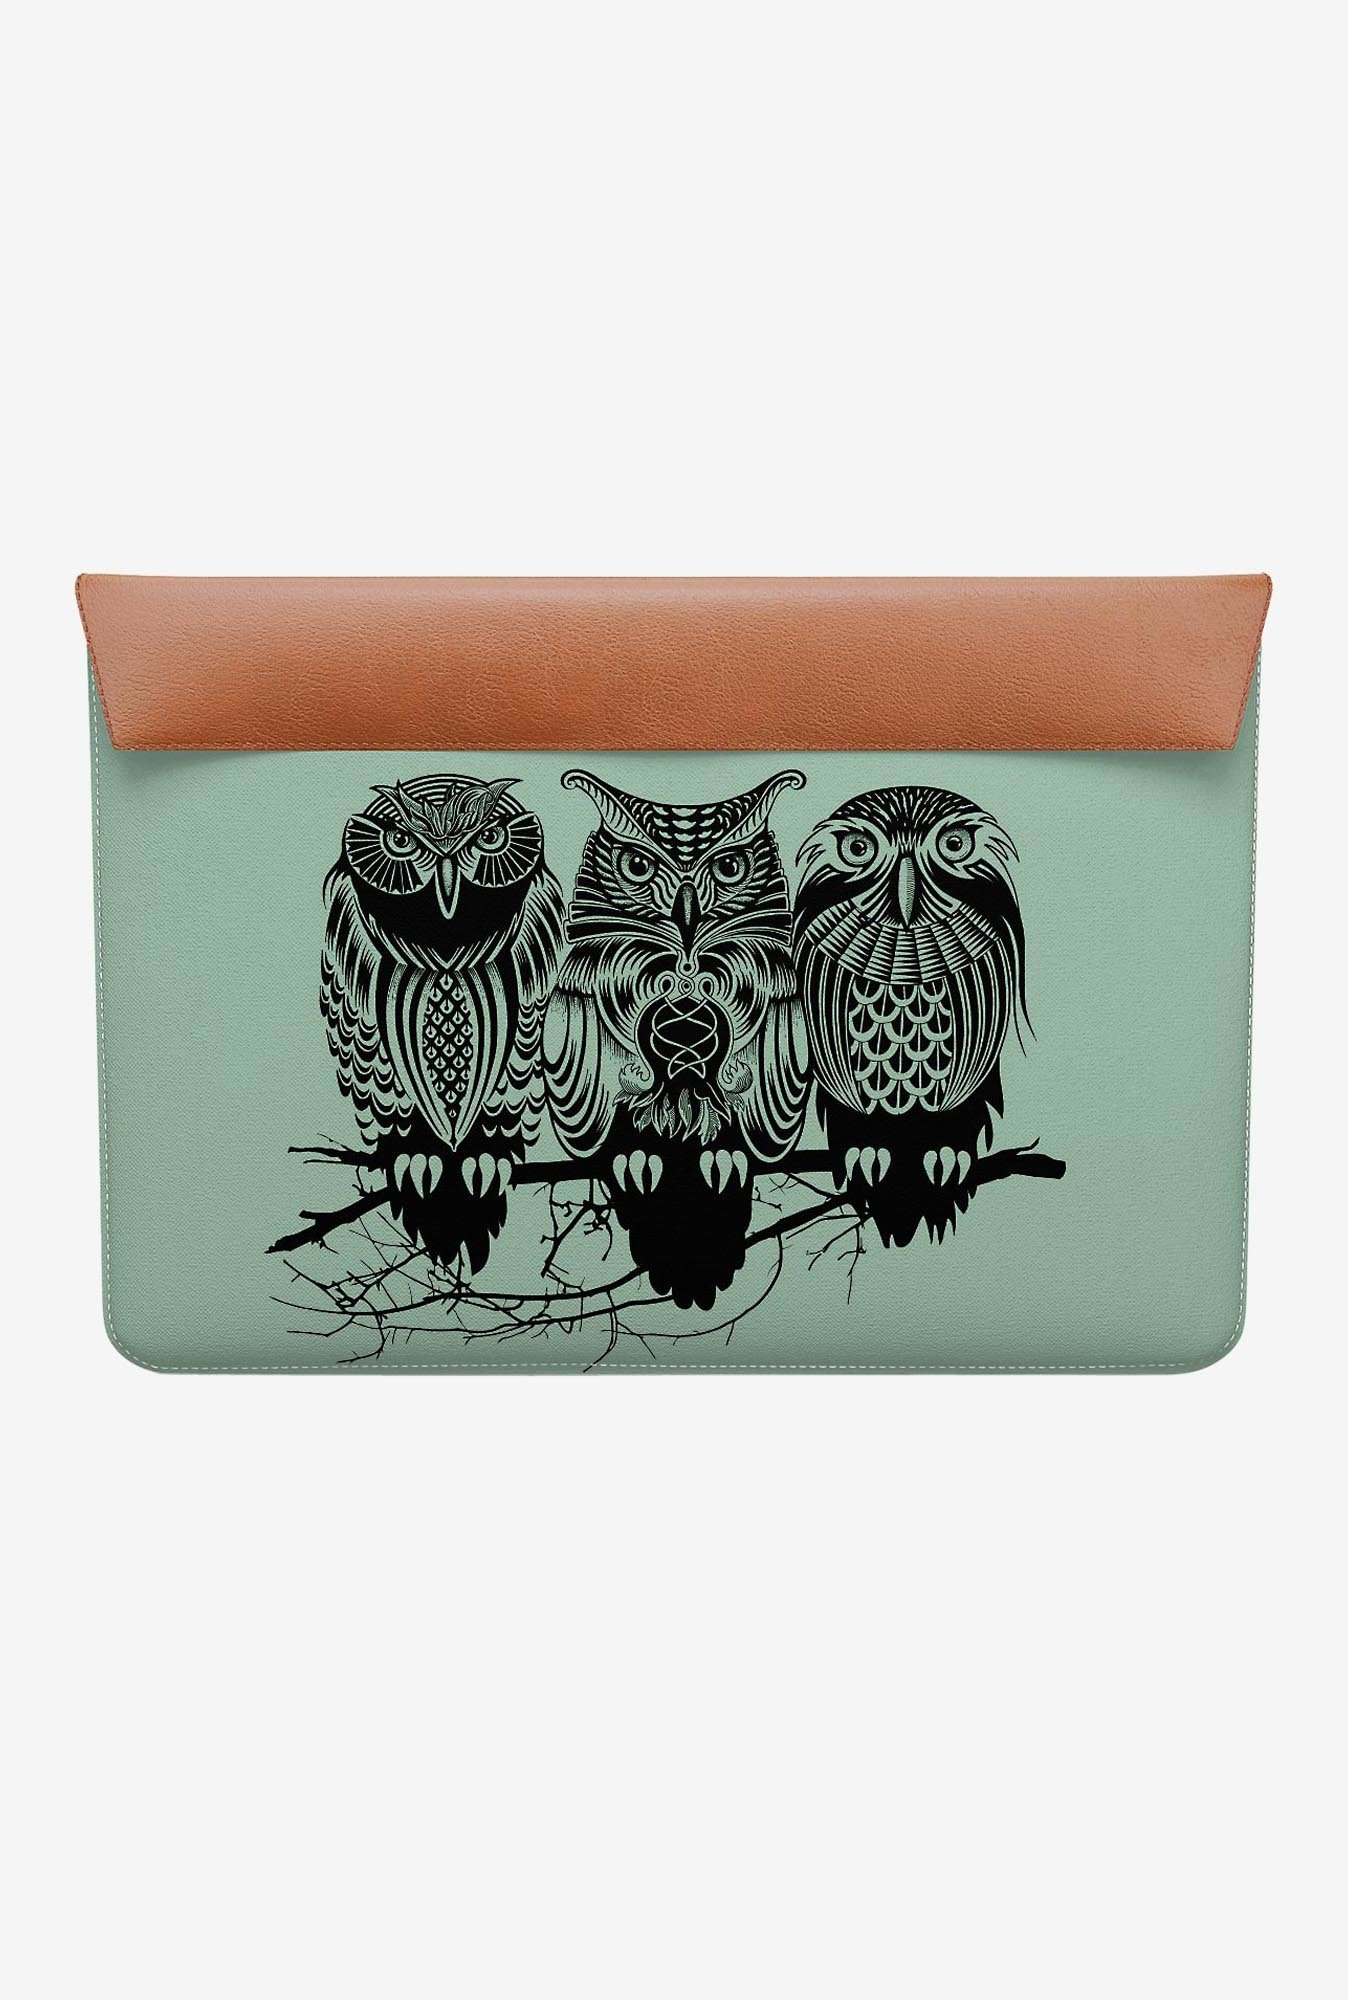 DailyObjects Owls of the Nile MacBook Air 13 Envelope Sleeve